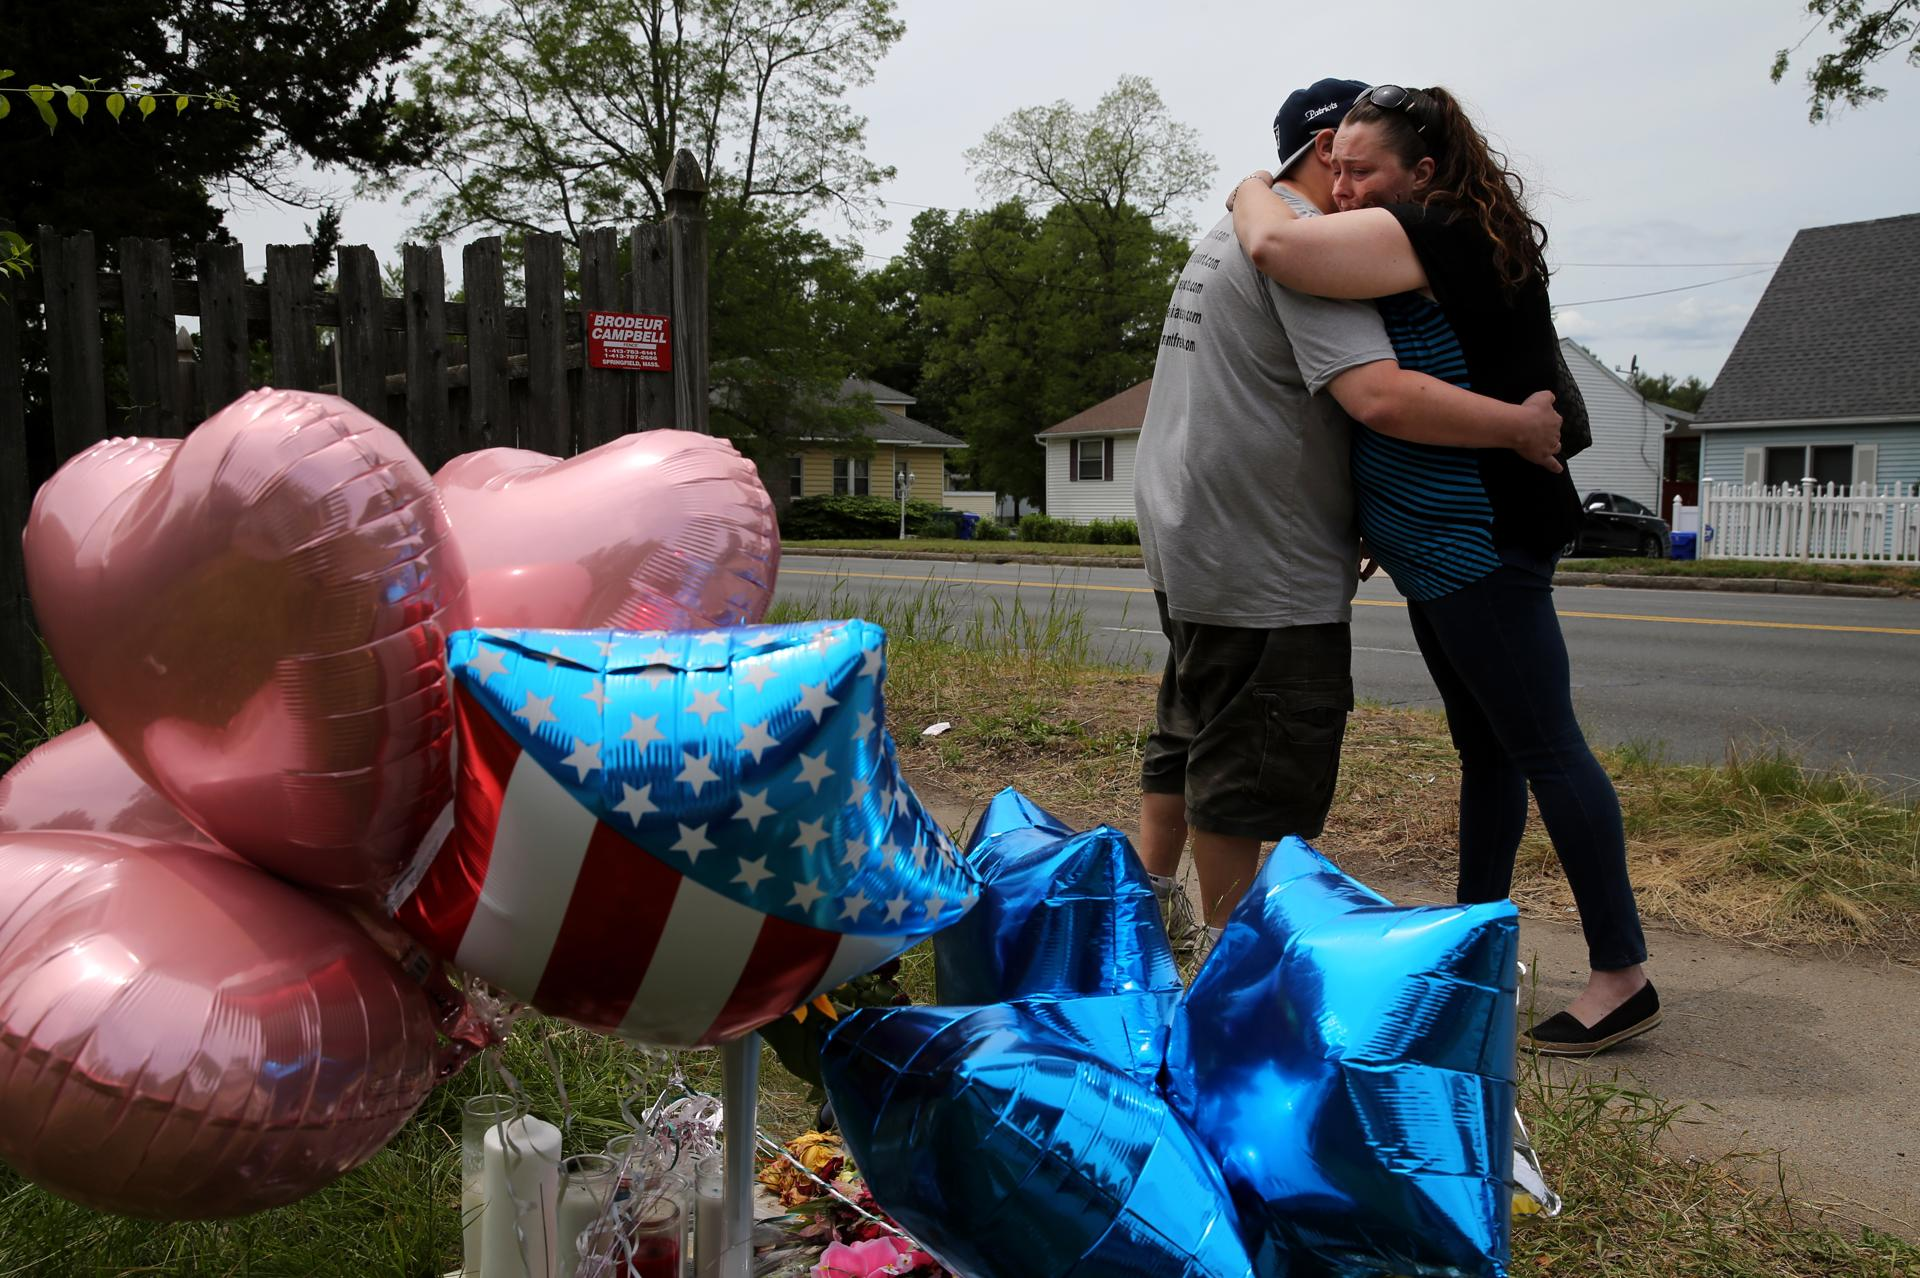 Before kidnapping charges stewart weldon cast a long shadow in a couple embraced after leaving balloons at a memorial outside the home of stewart weldon fandeluxe Choice Image